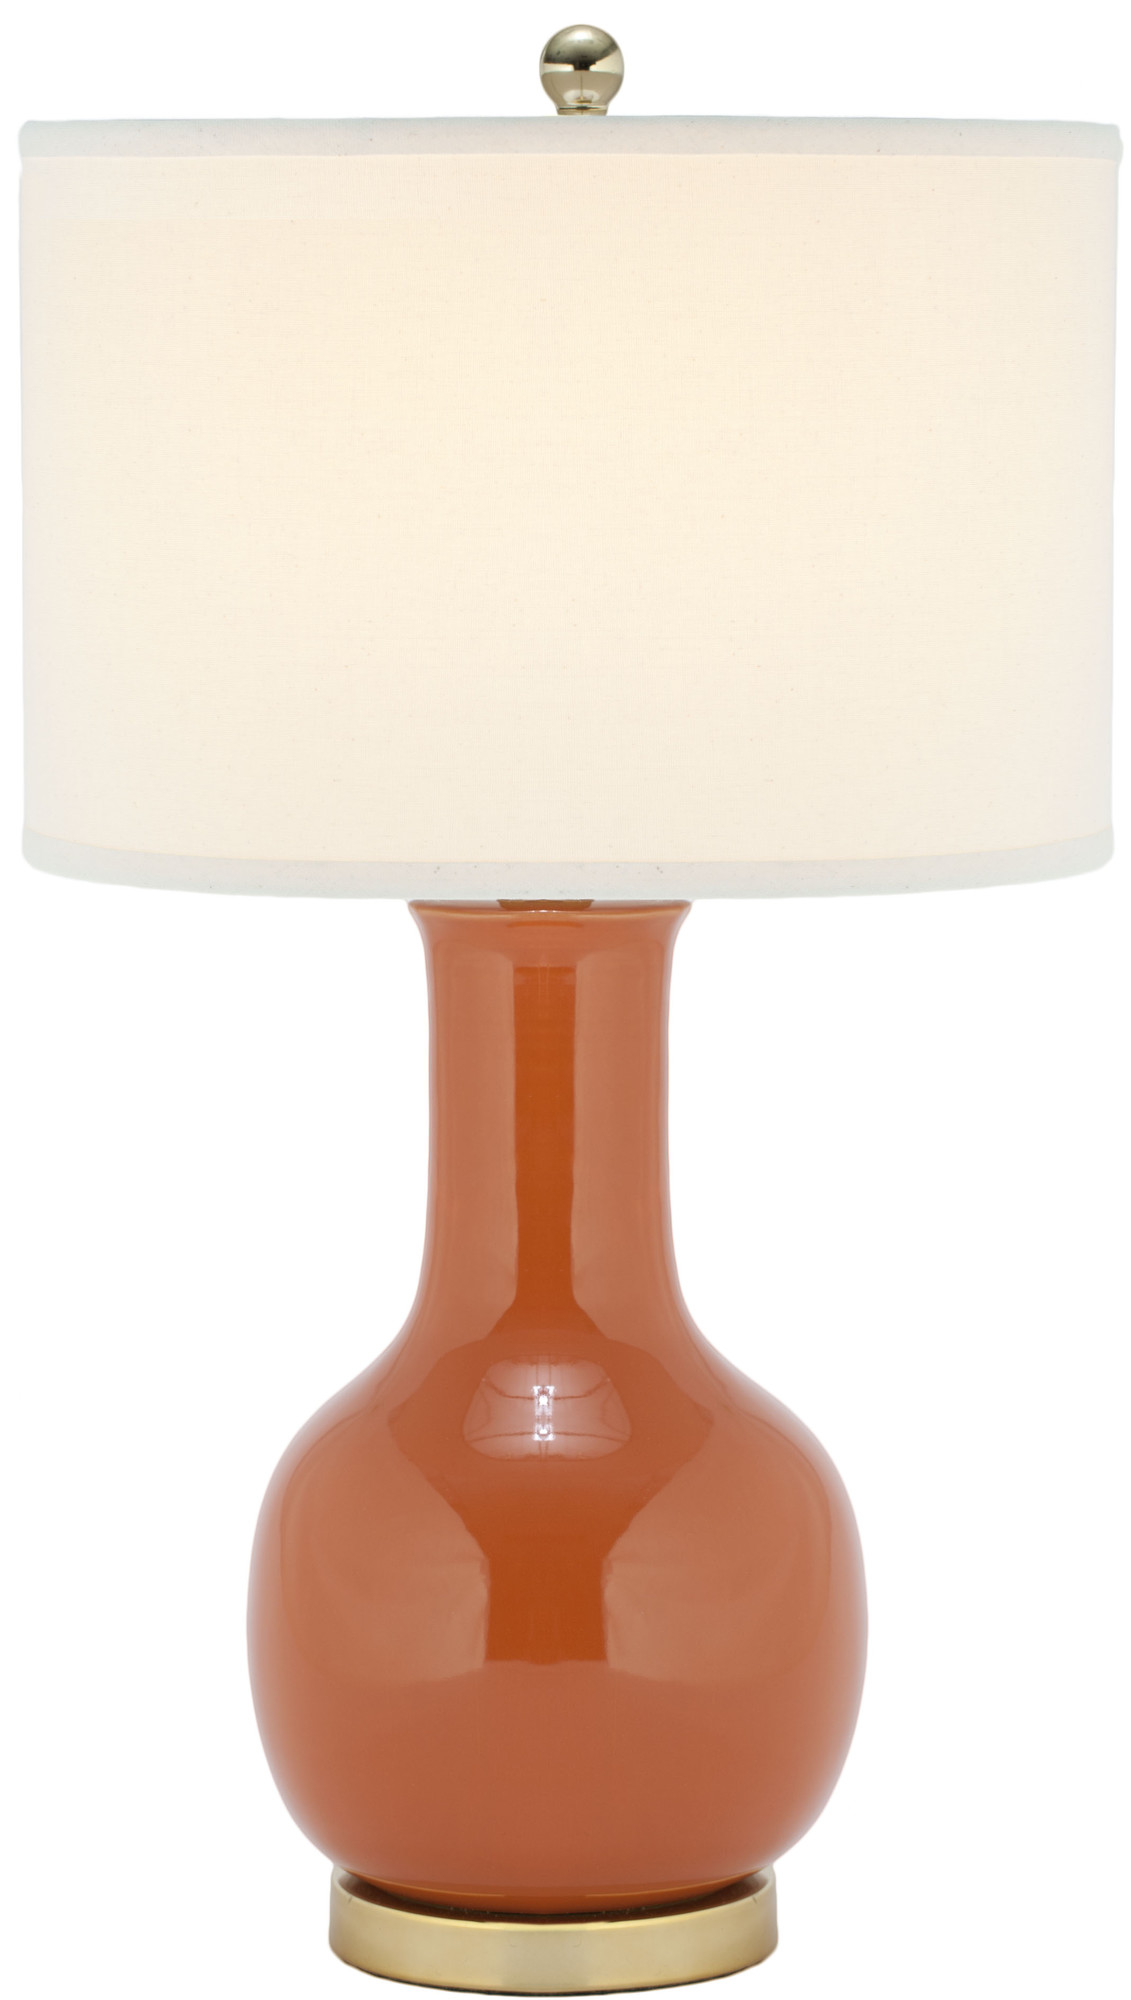 Safavieh-Judy-27.5-H-Table-Lamp-with-Drum-Shade.jpg